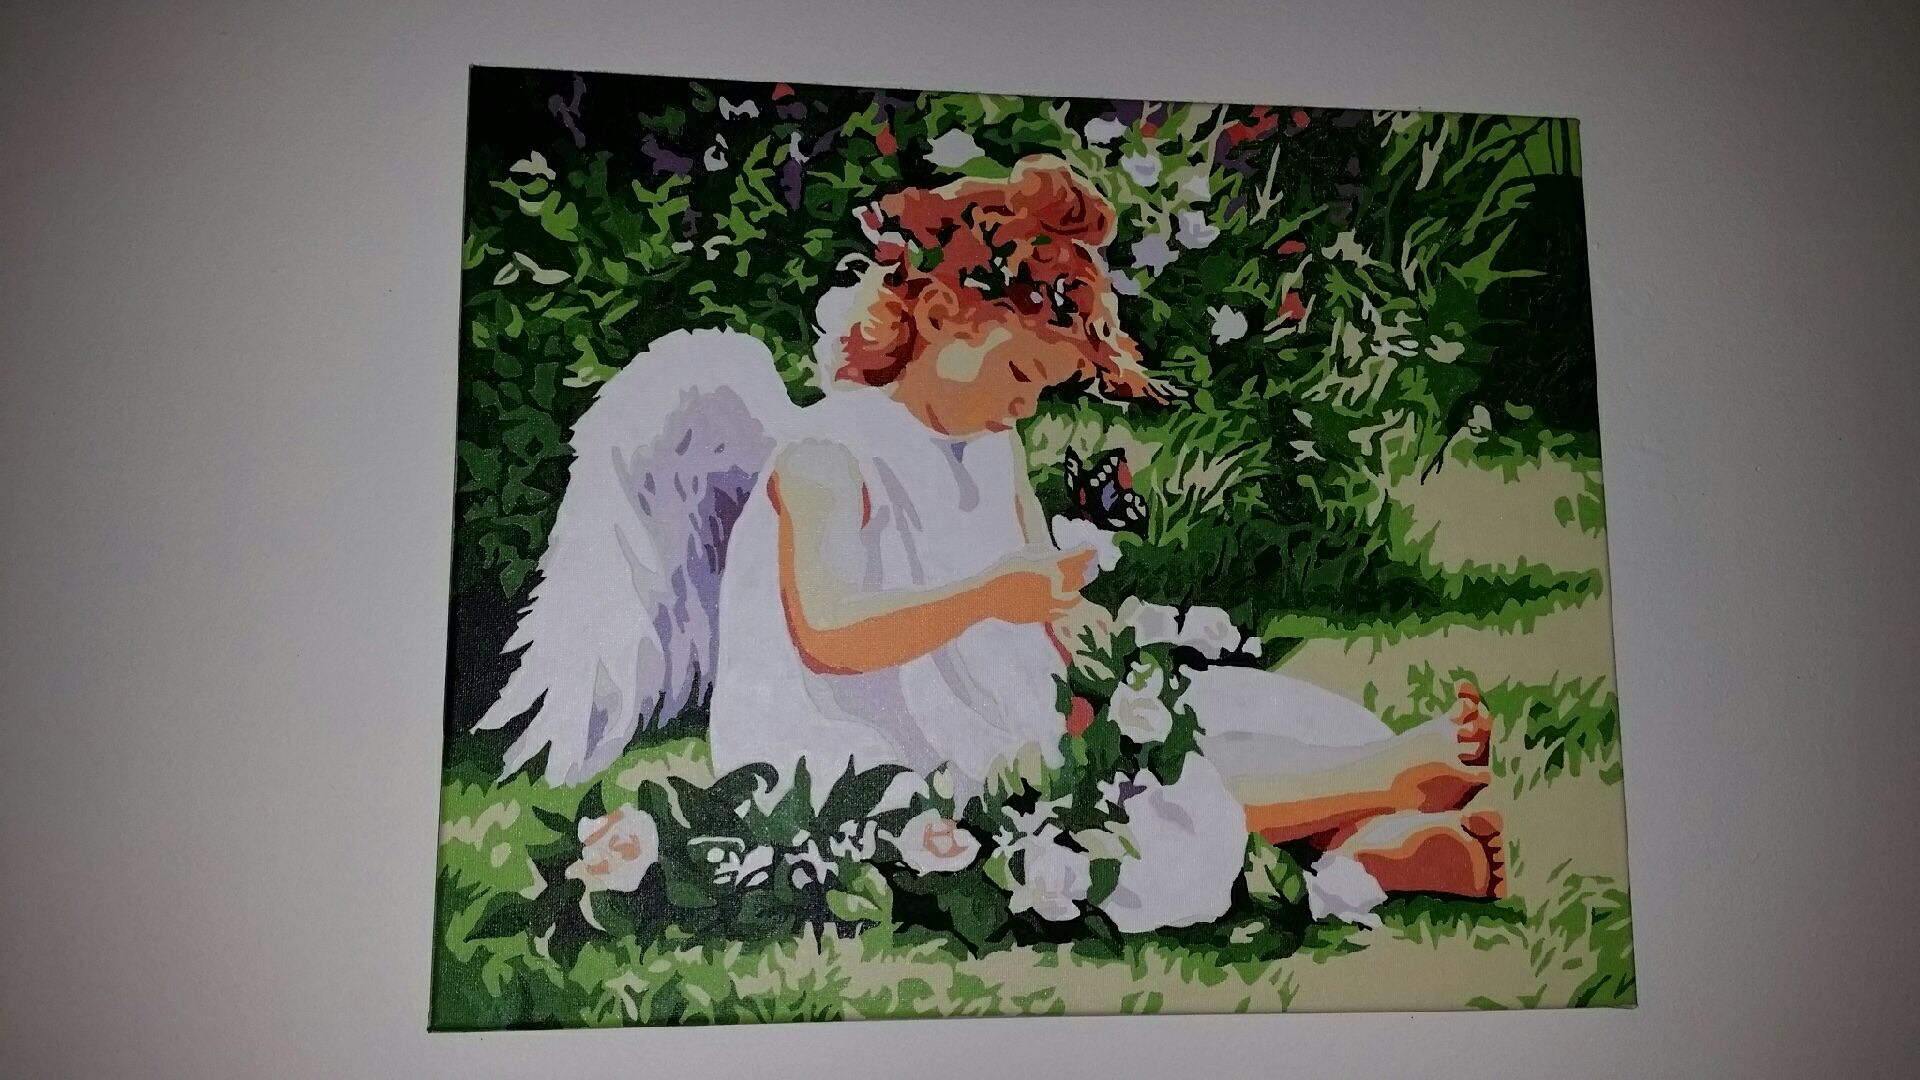 Garden Angel by Astrid